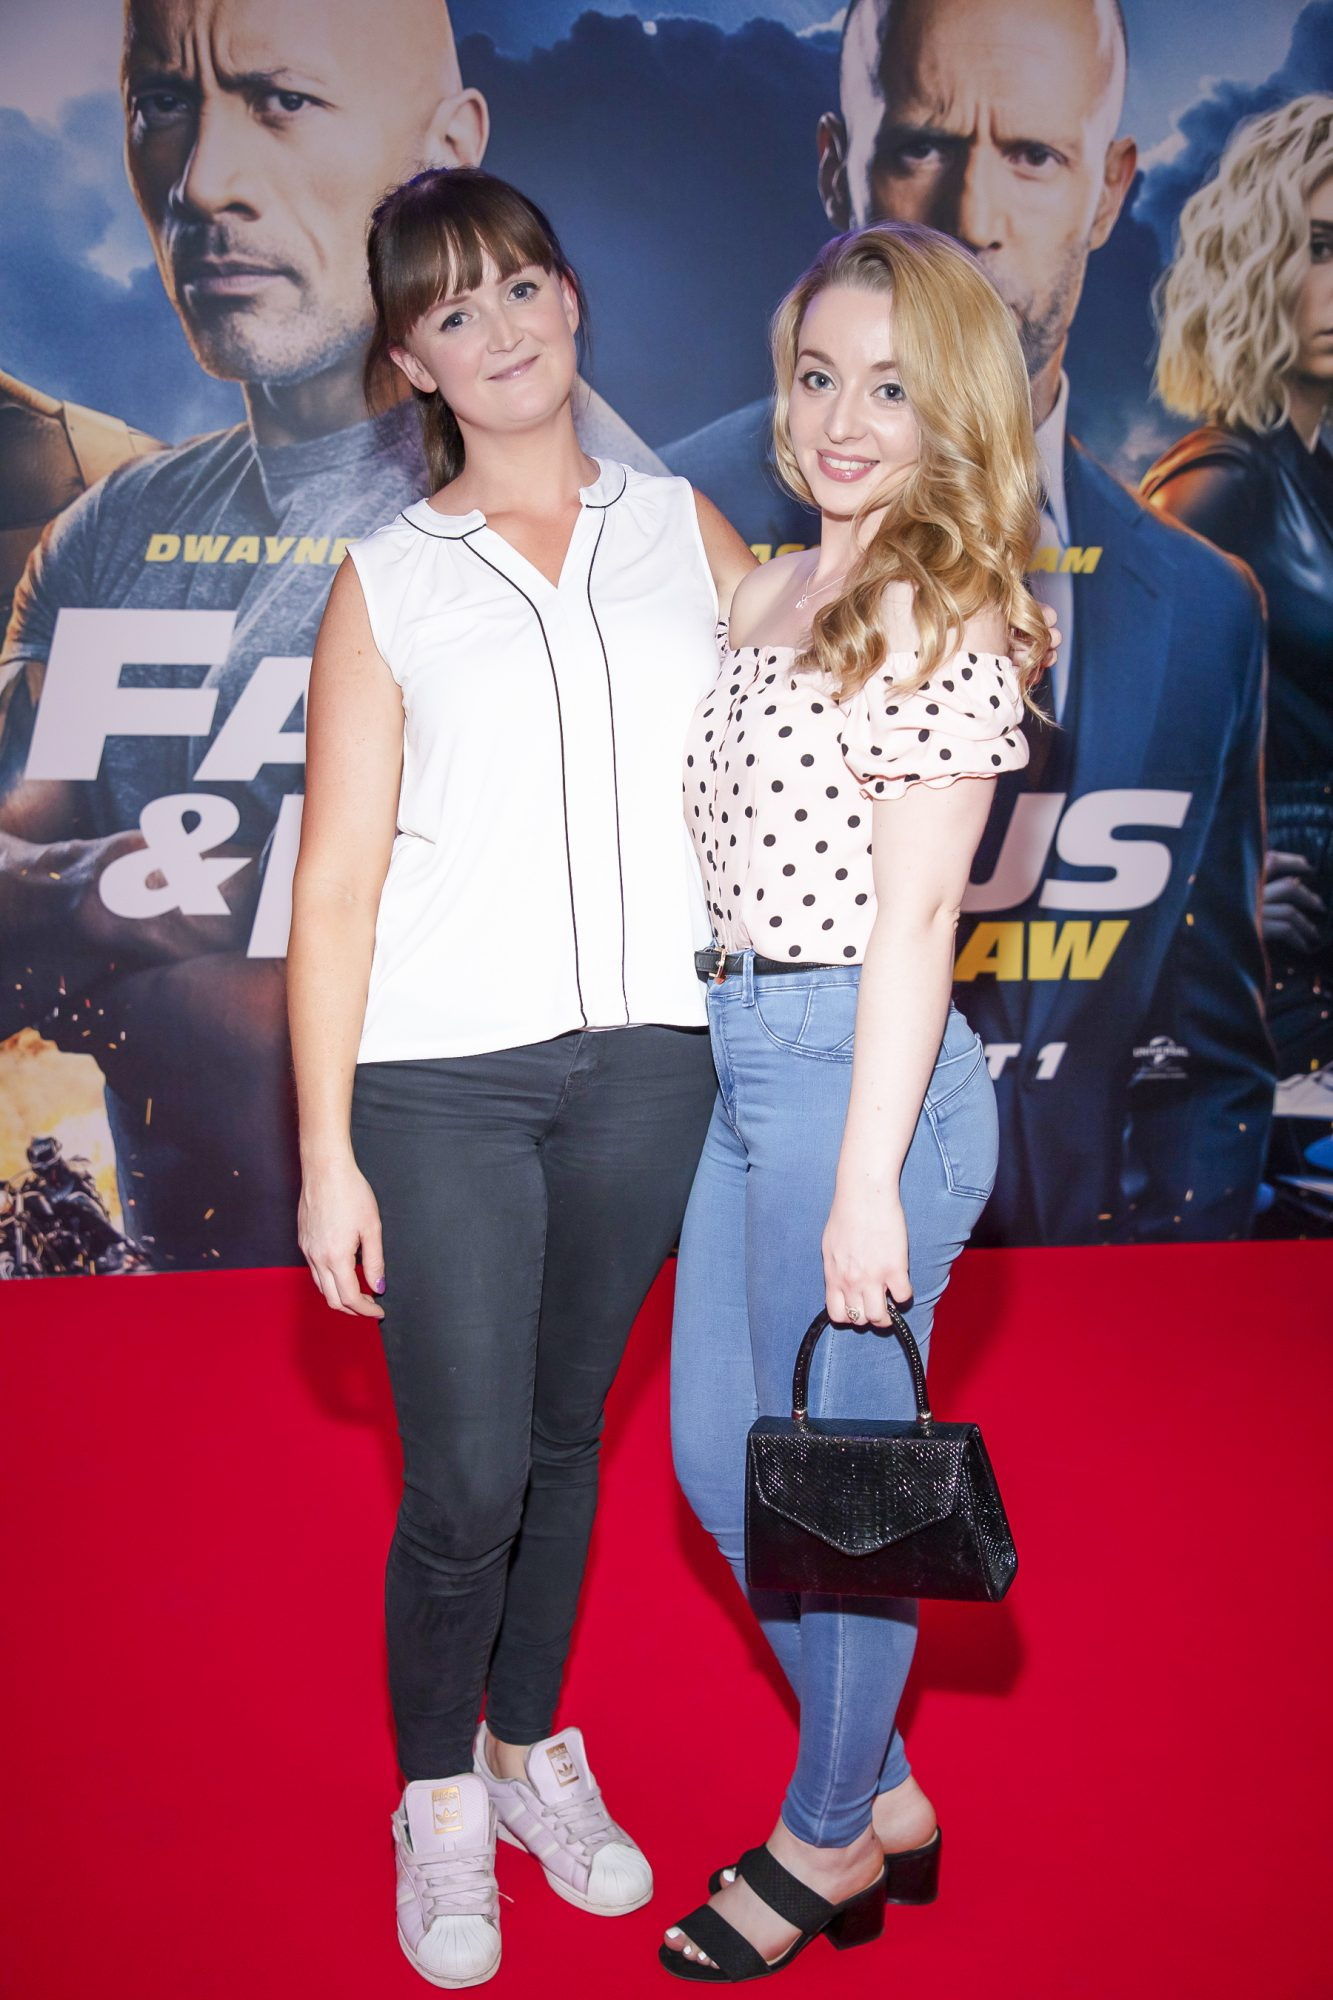 Claire Twyford  & Danielle Jordan pictured at a special preview screening of Fast & Furious Presents: Hobbs & Shaw. Photo: Anthony Woods